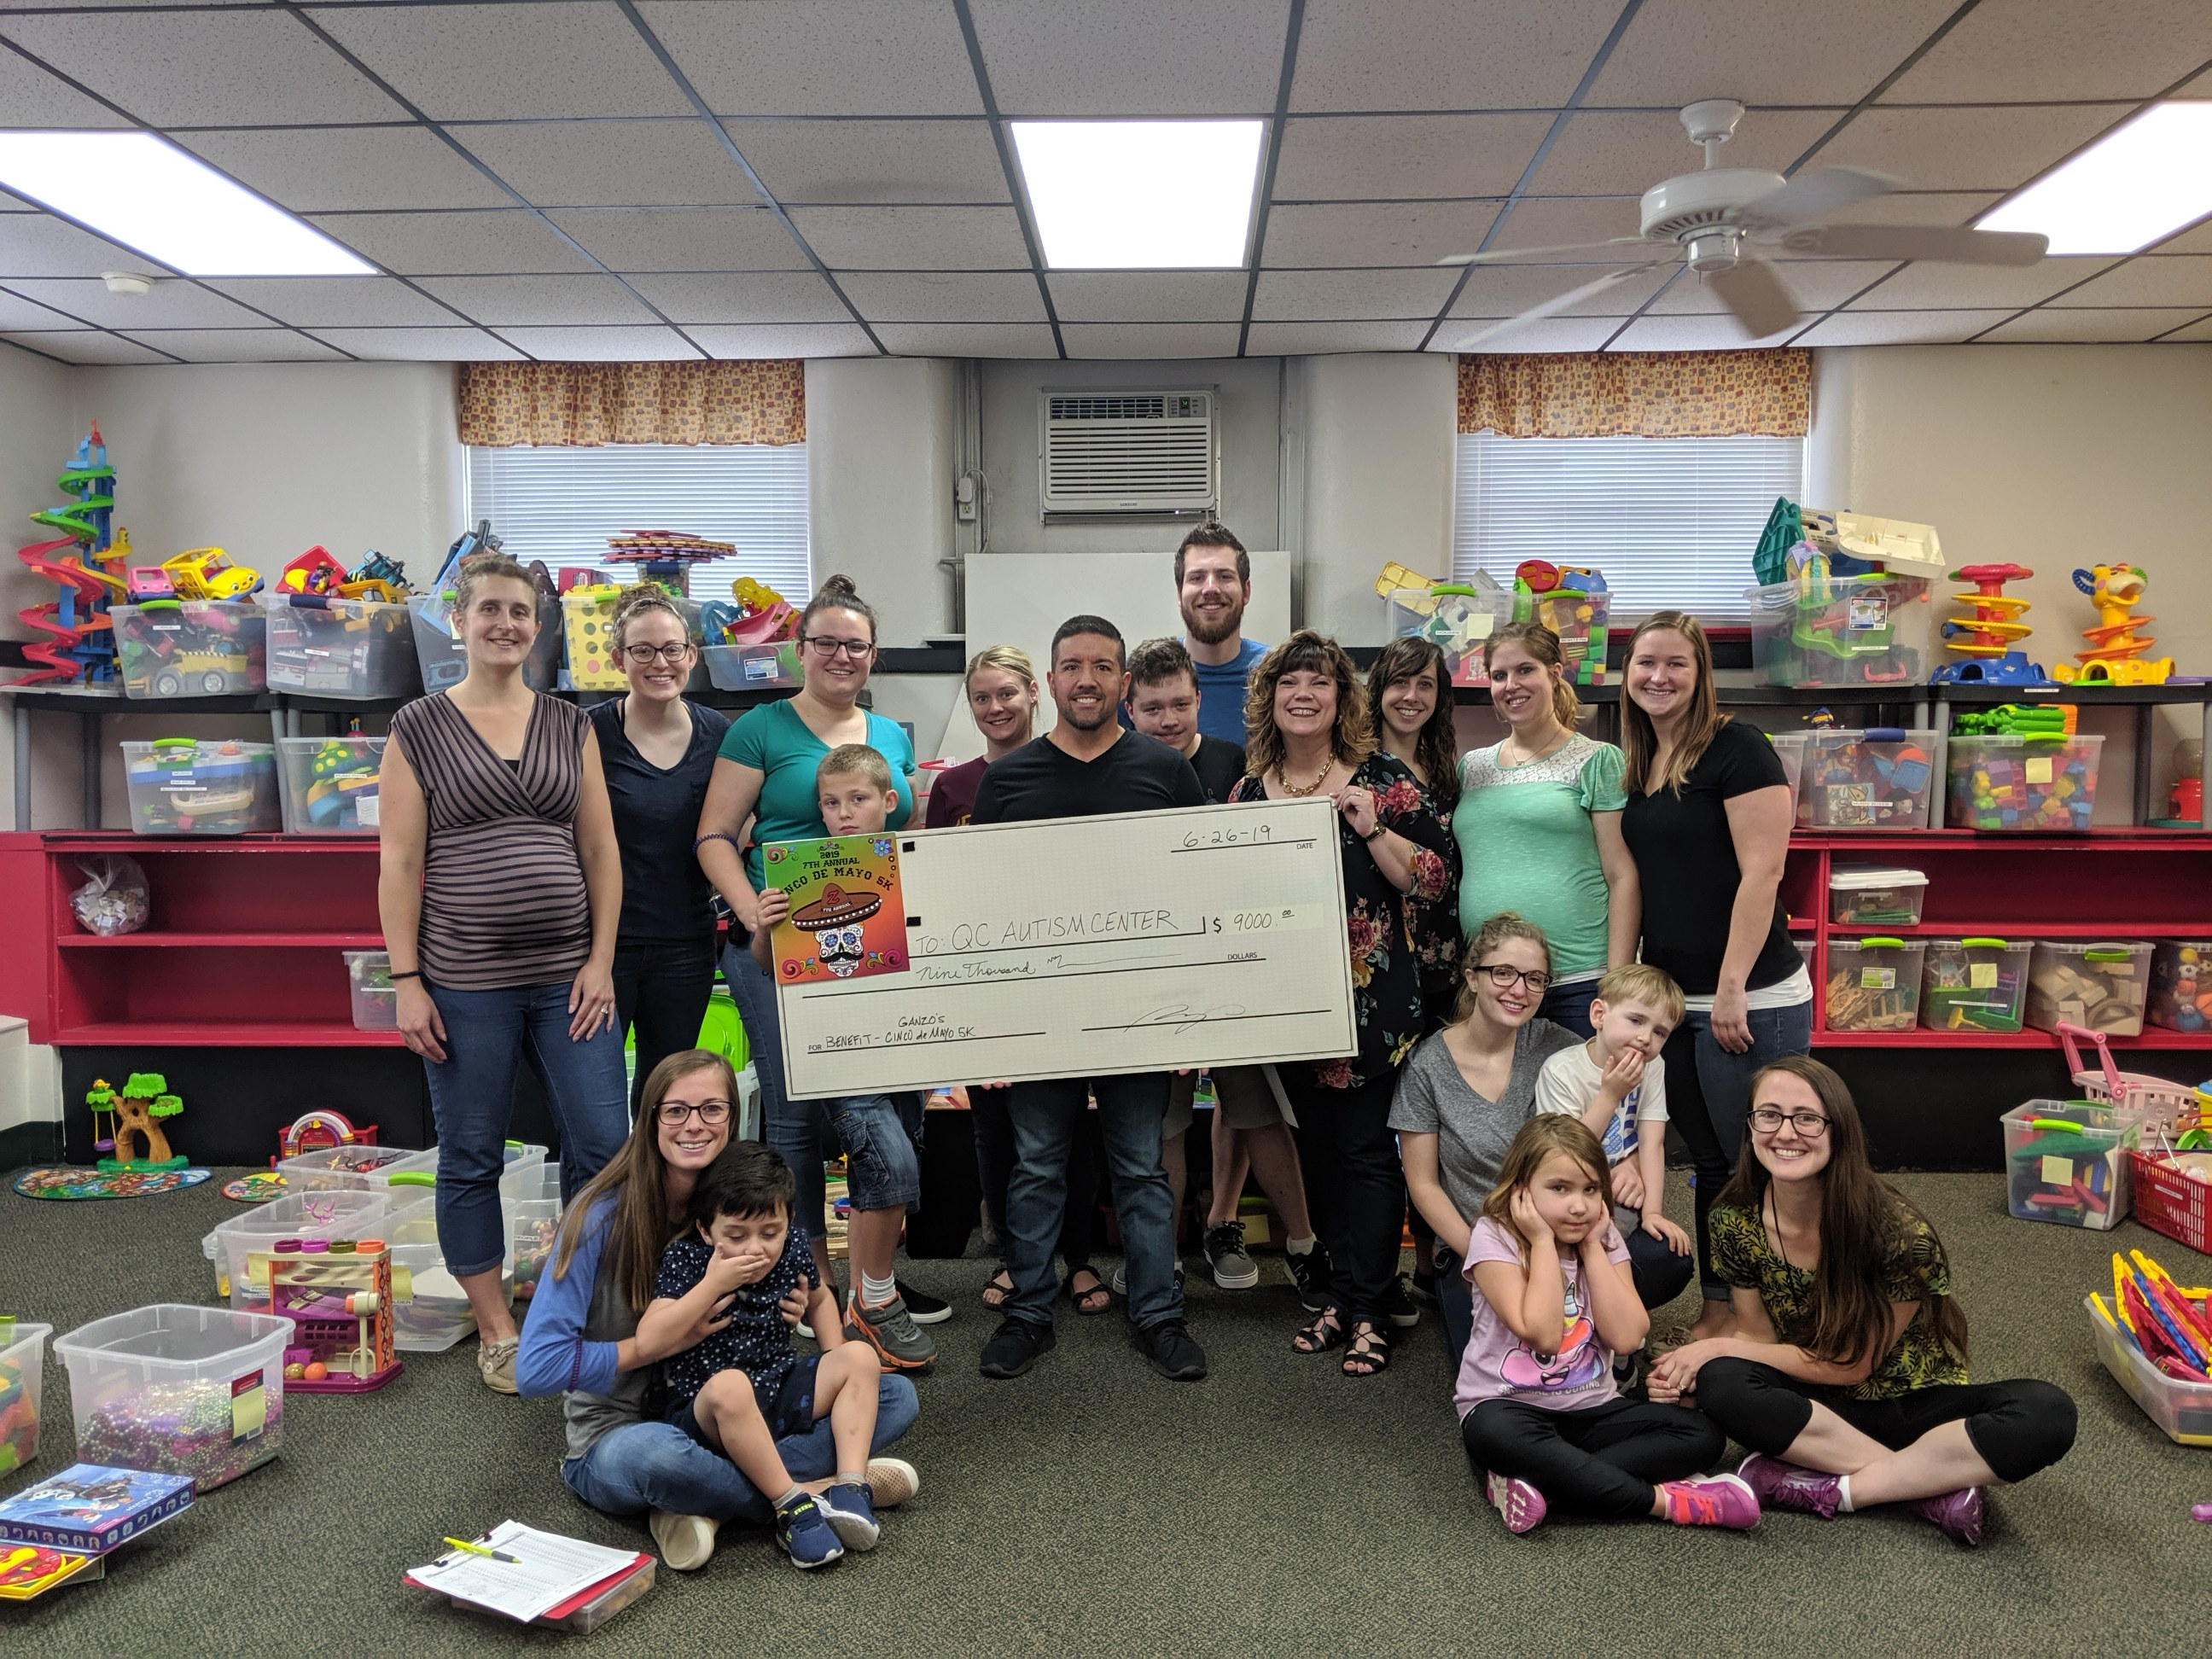 Ganzo's Donates $9,000 to Local Charity